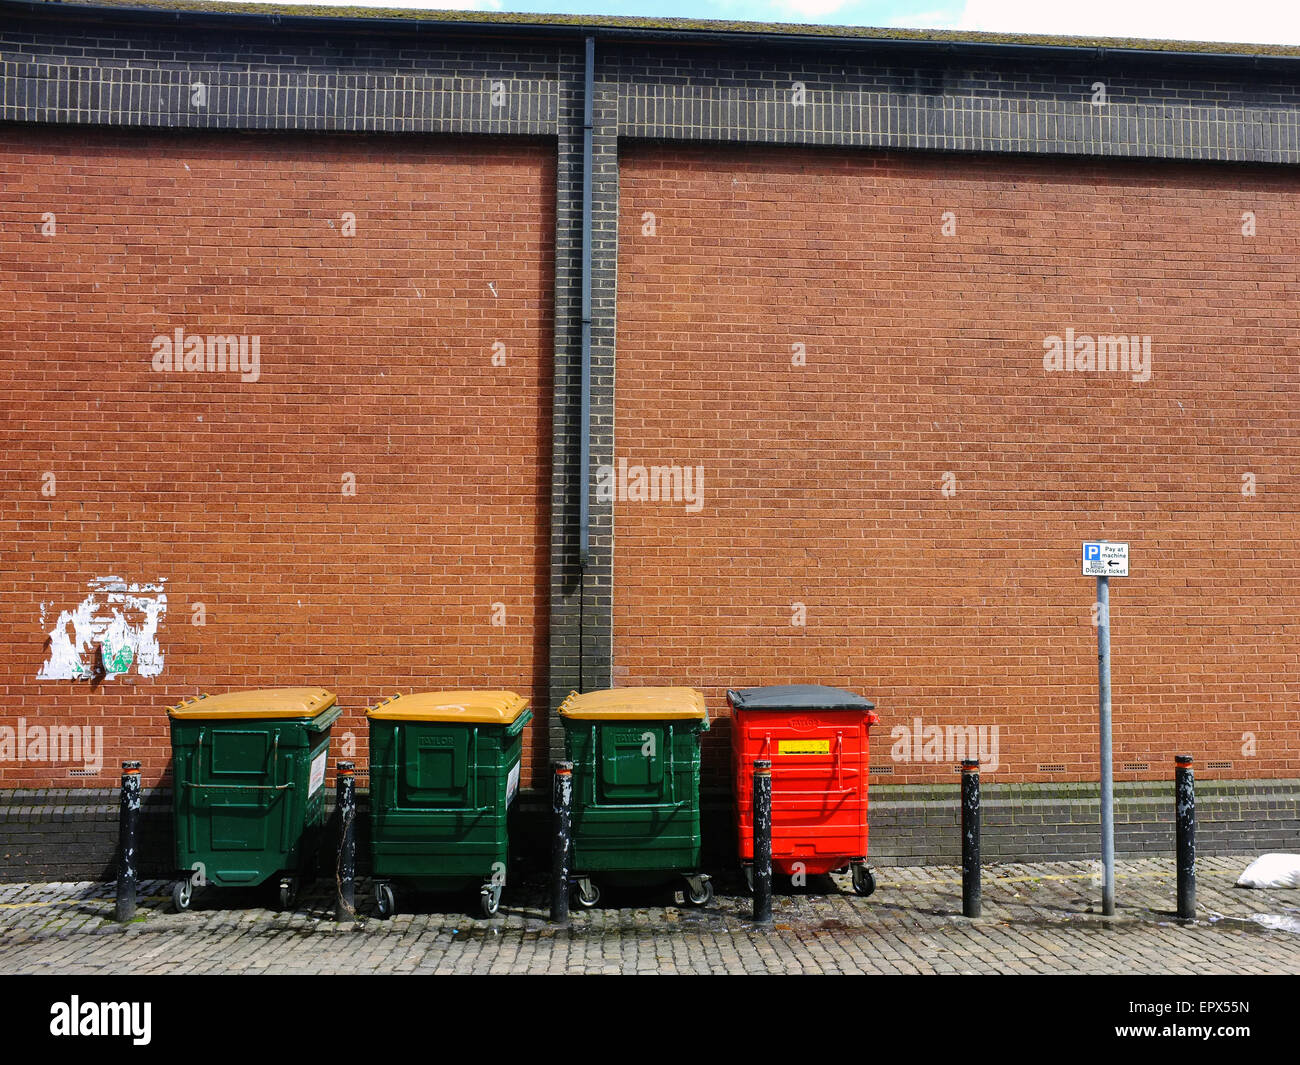 A row of green and red rubbish bins along a street in Bristol. - Stock Image